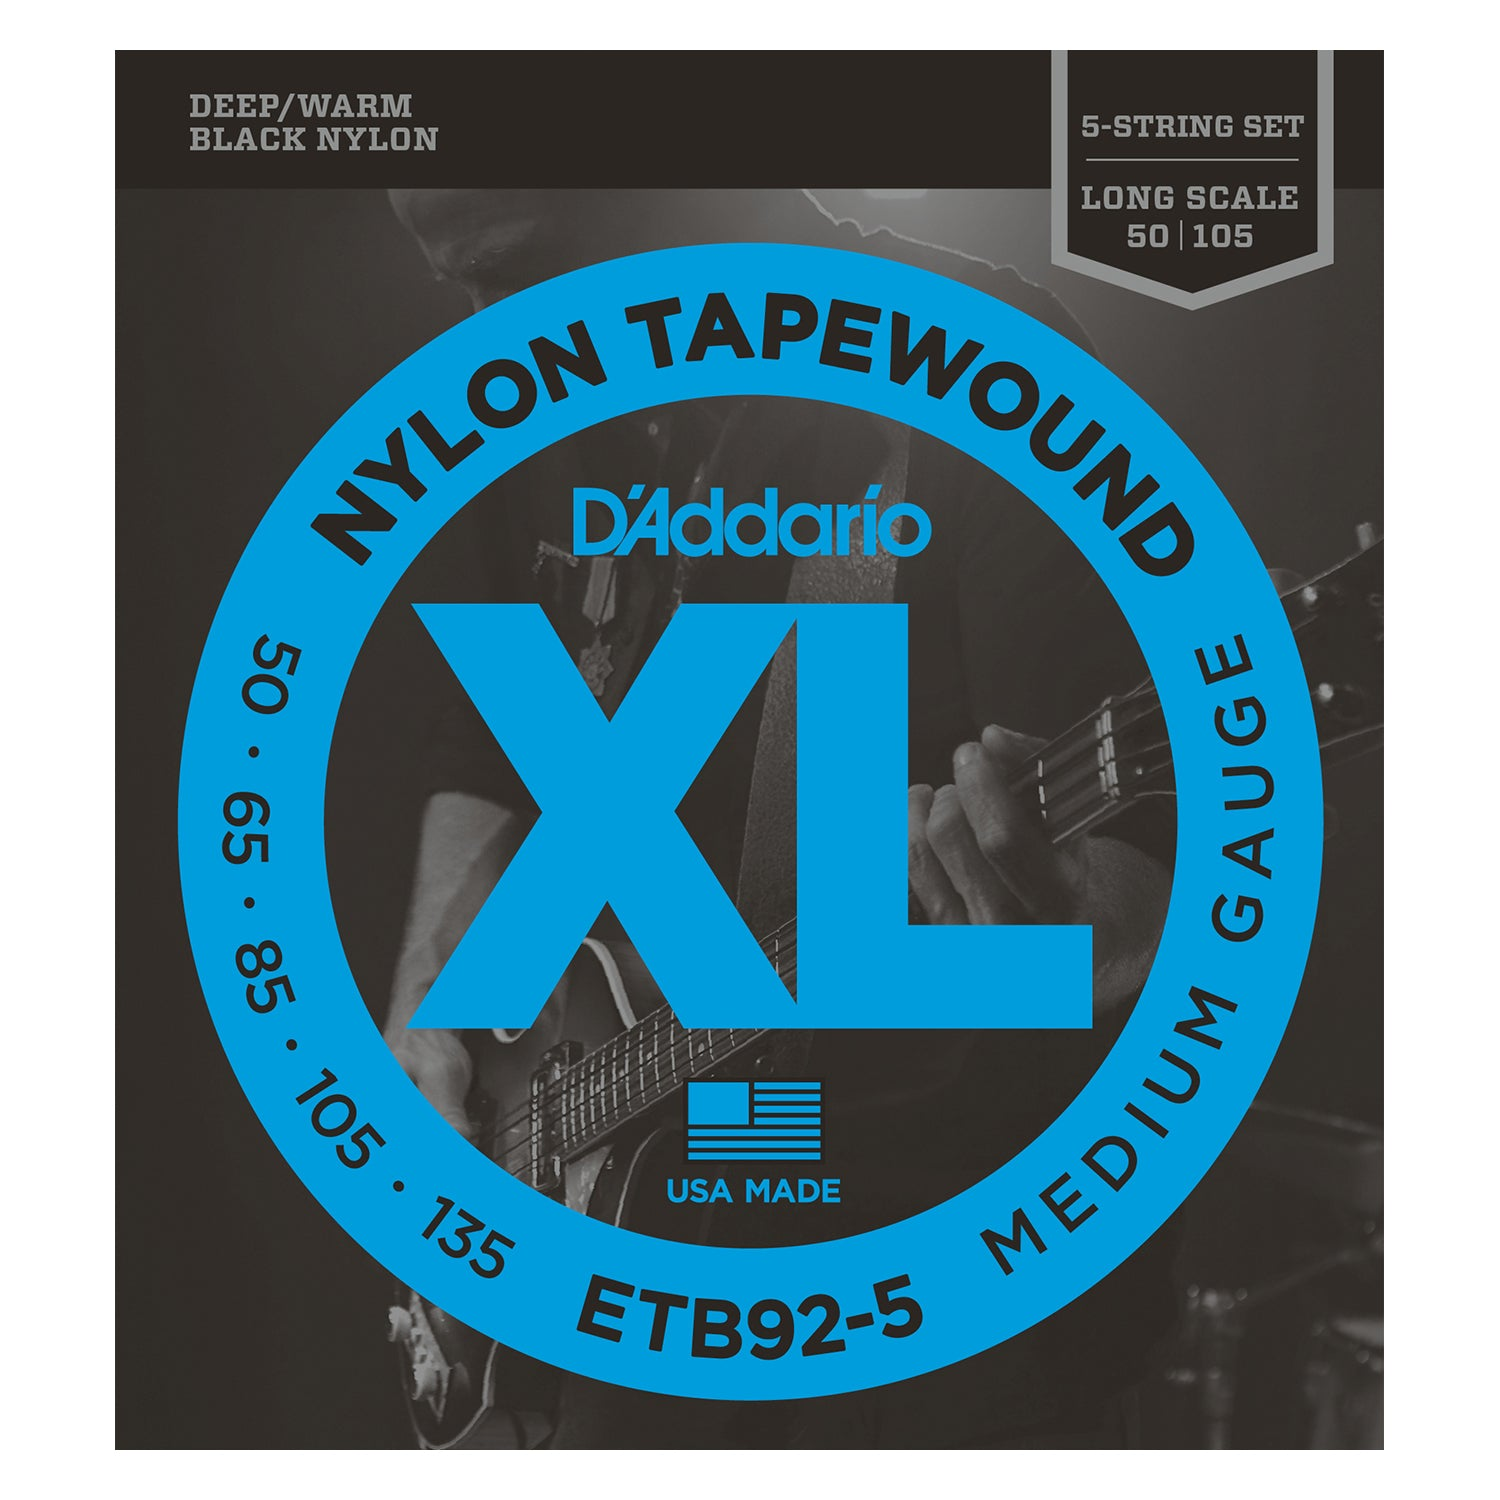 D'Addario ETB92-5 5-String Tapewound Bass Guitar Strings, Medium, 50-135, Long Scale